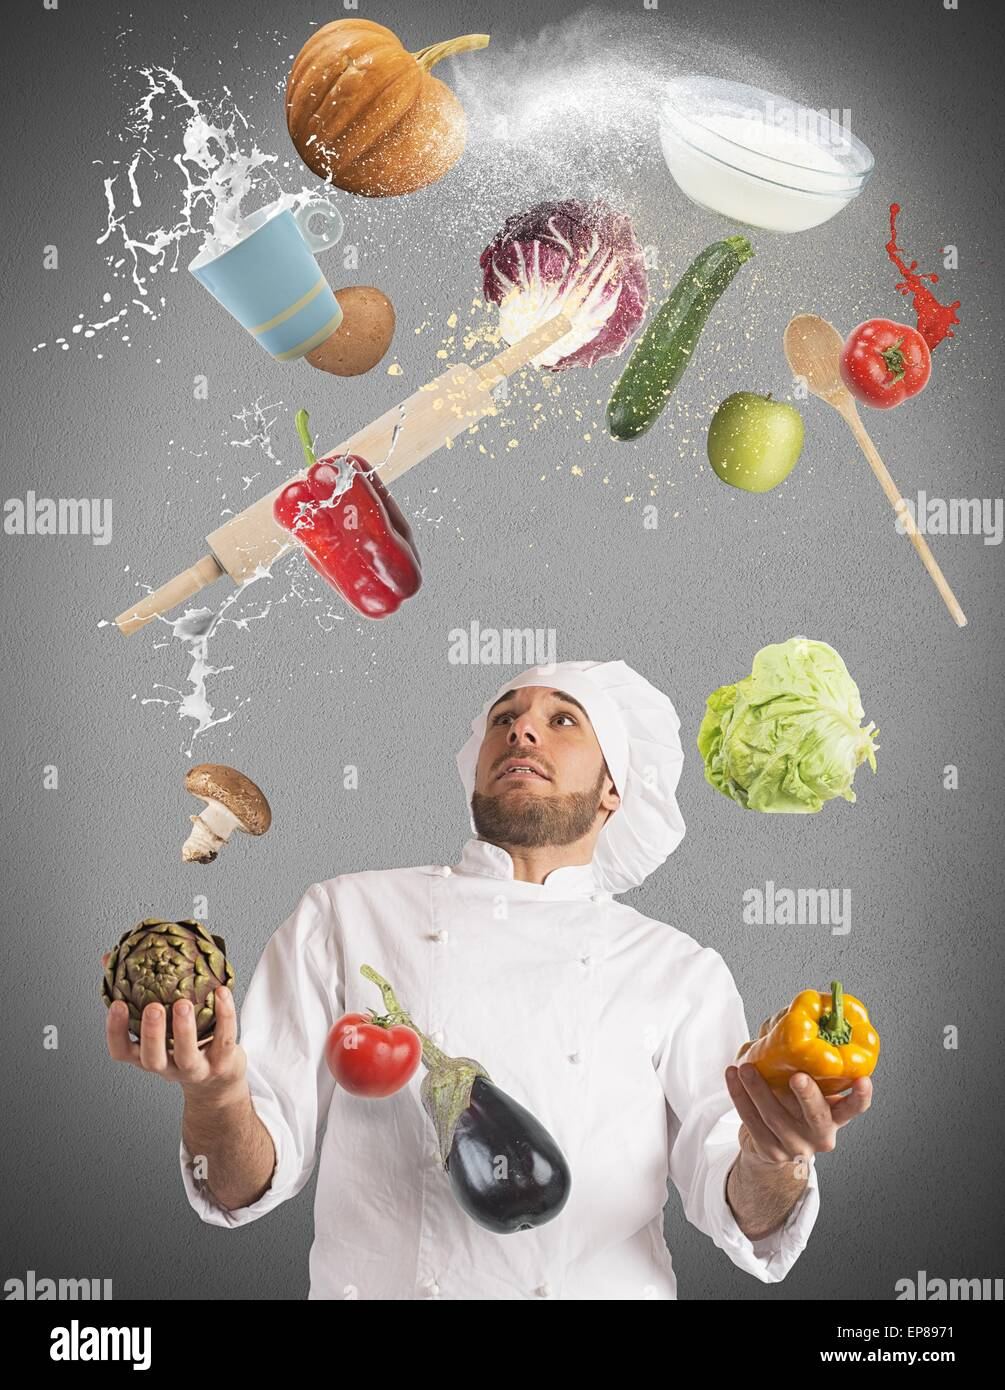 Juggle while cooking - Stock Image